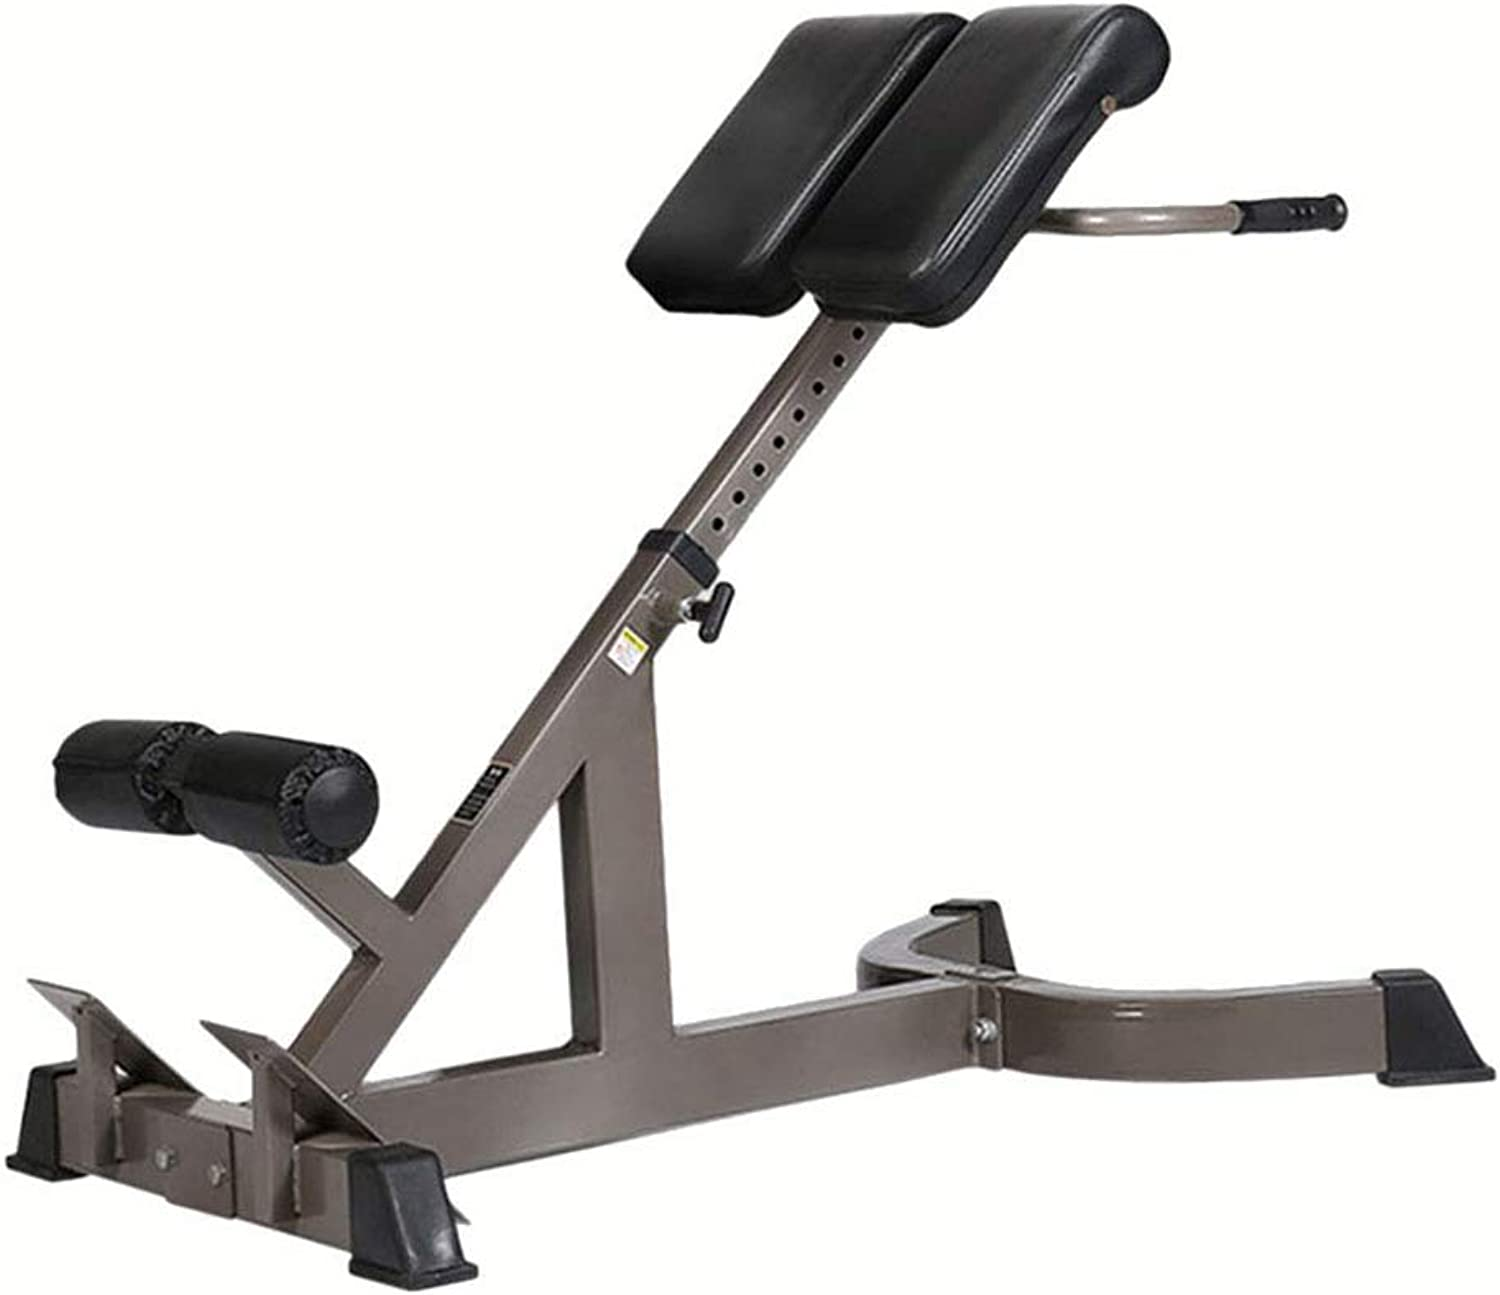 CLE@ Roman Chair Home Lumbar Muscle Training Gym Professional Fitness Equipment MultiFunction, Mat Height 8 Files Can be Adjusted While Left and Right Adjustment